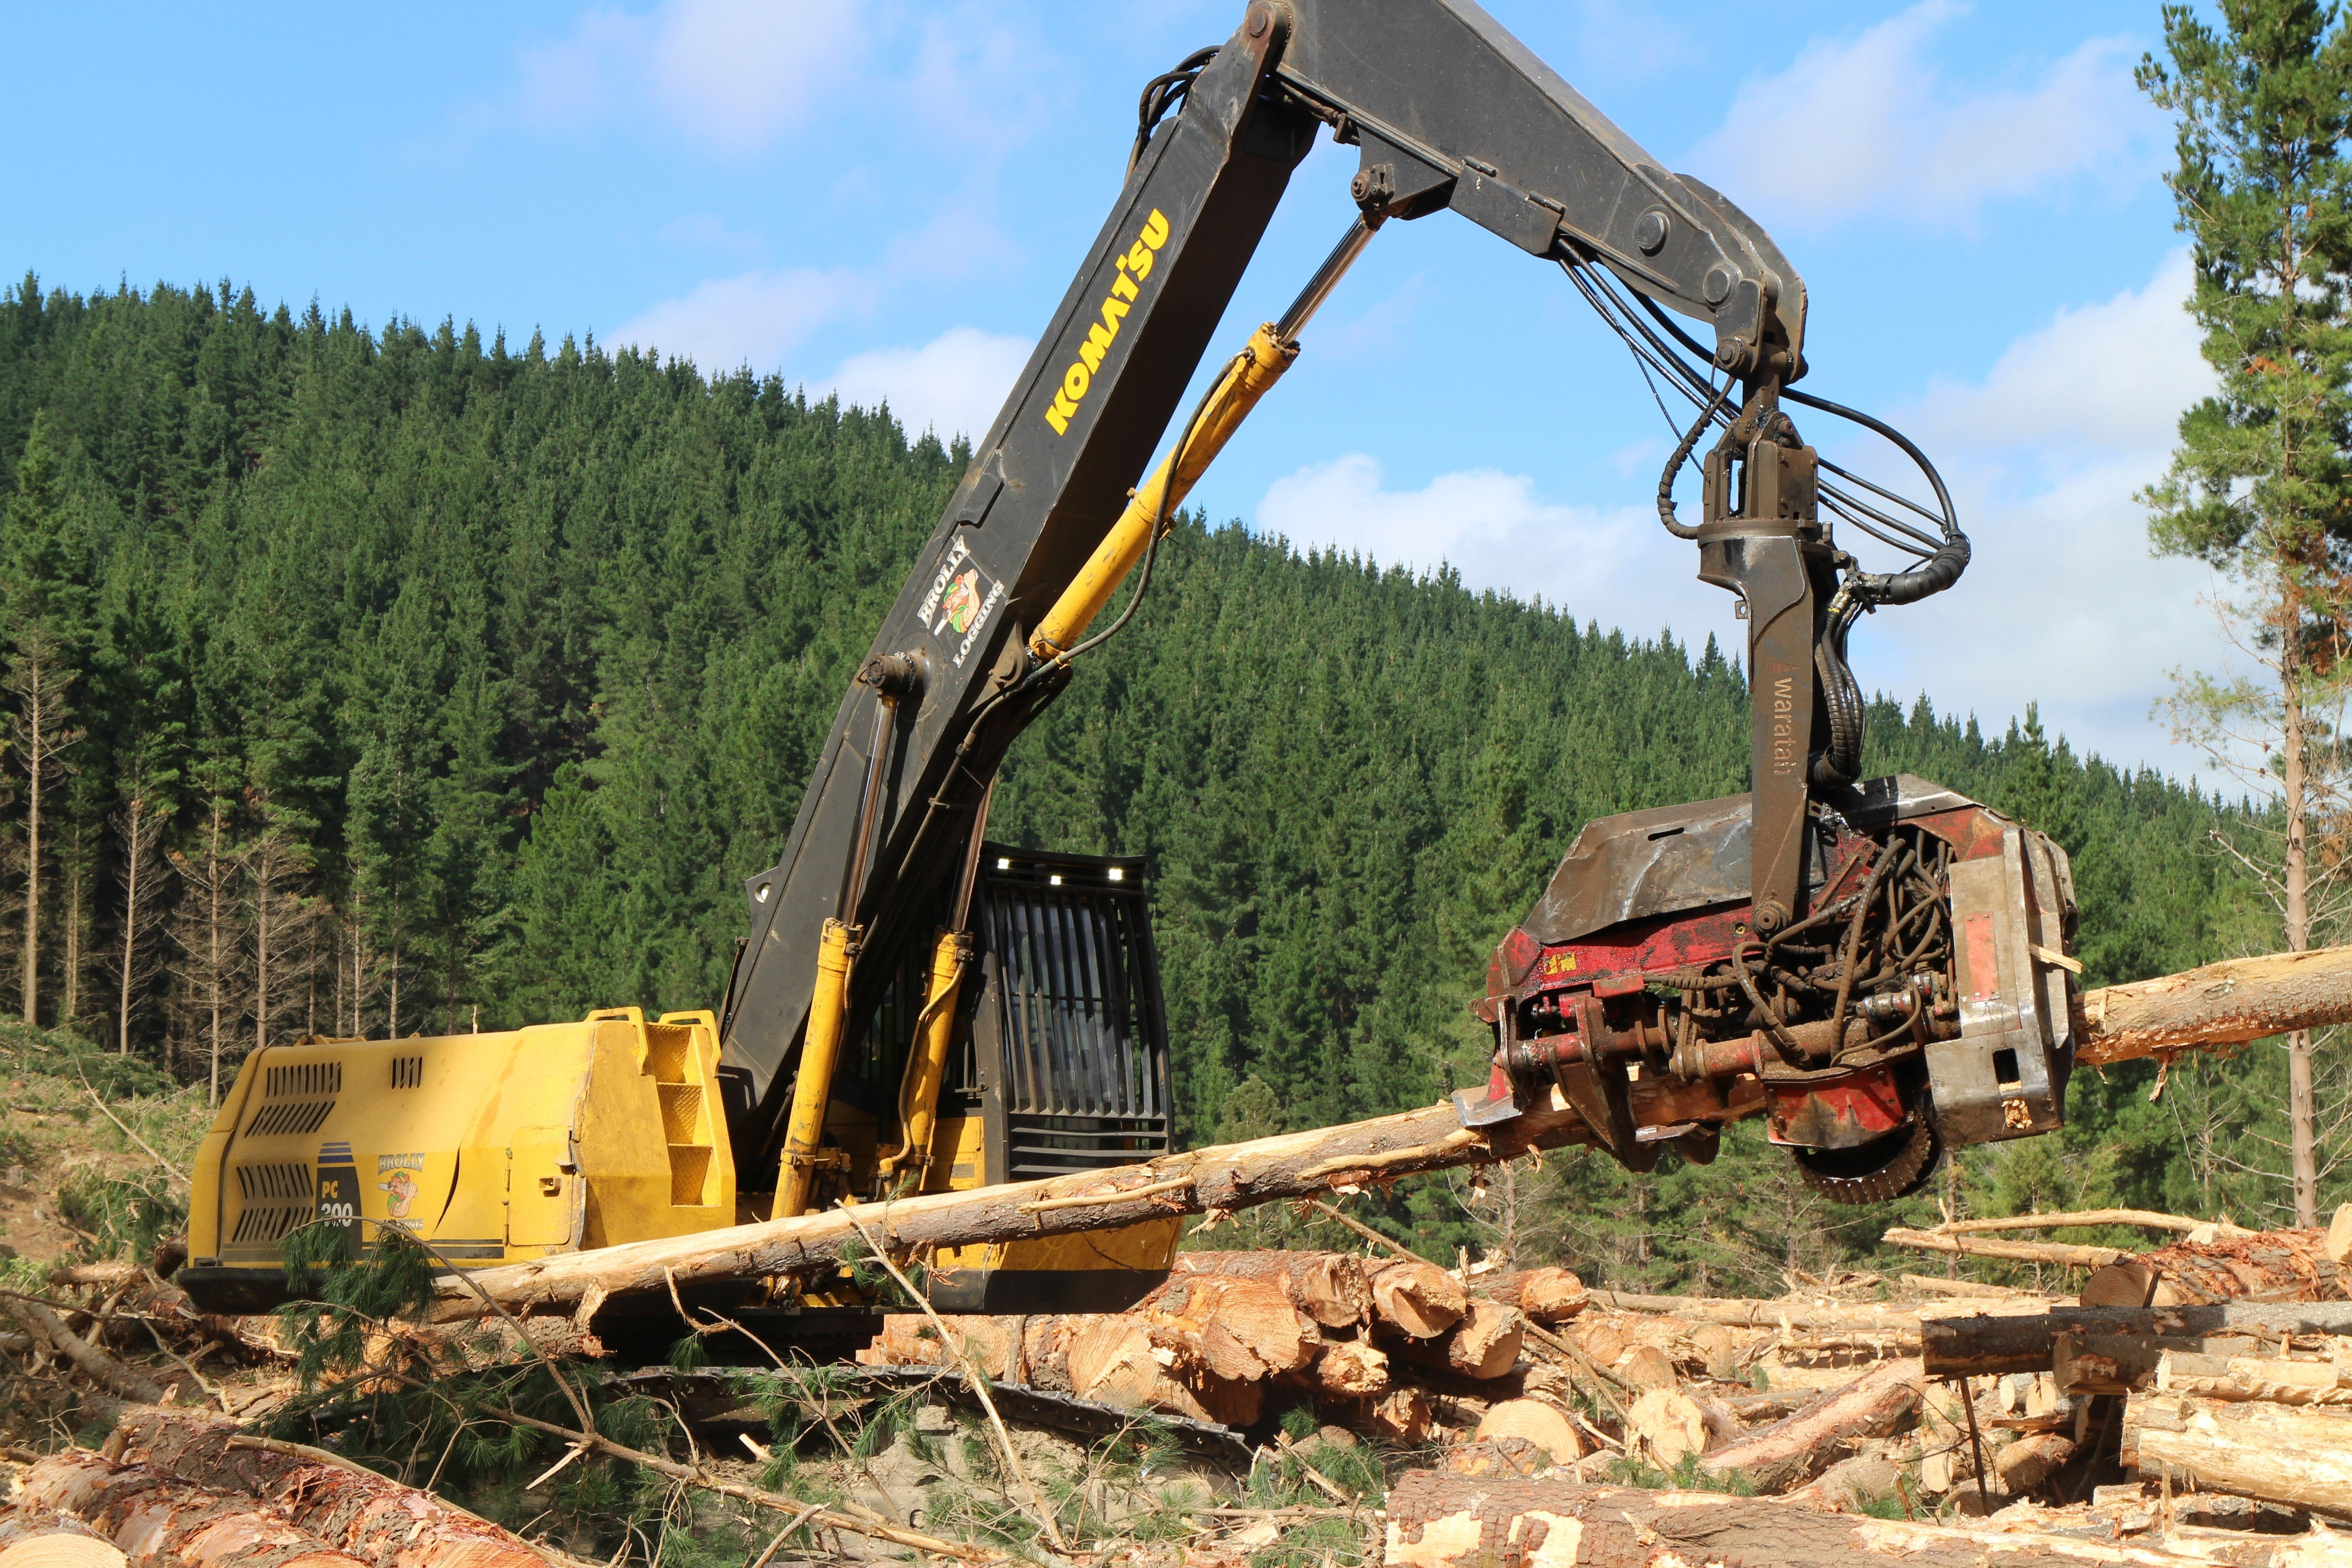 Brolly Logging Processor at work